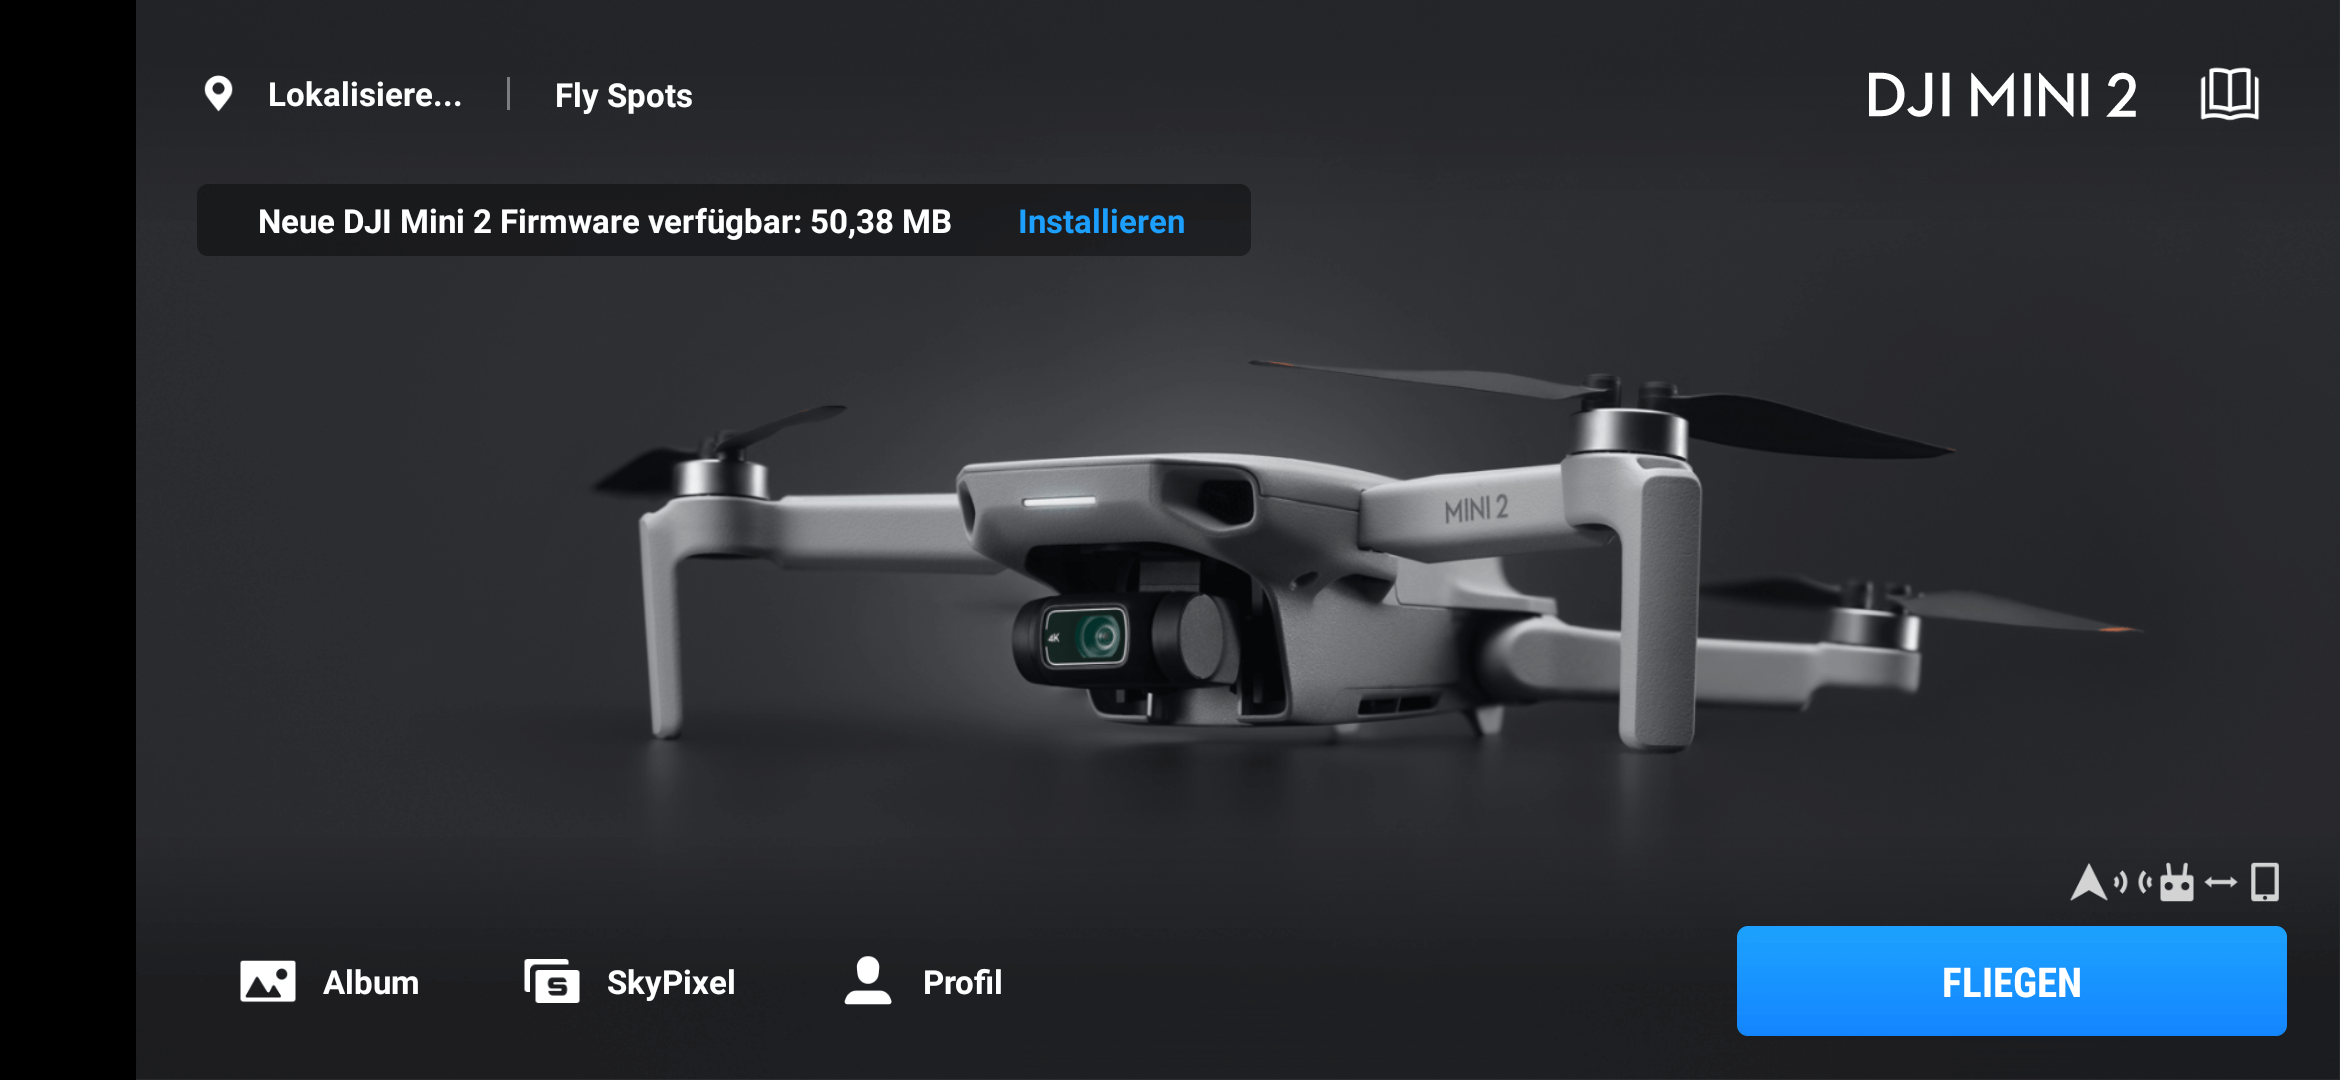 dji mini 2 firmware v01.02.0100 update info